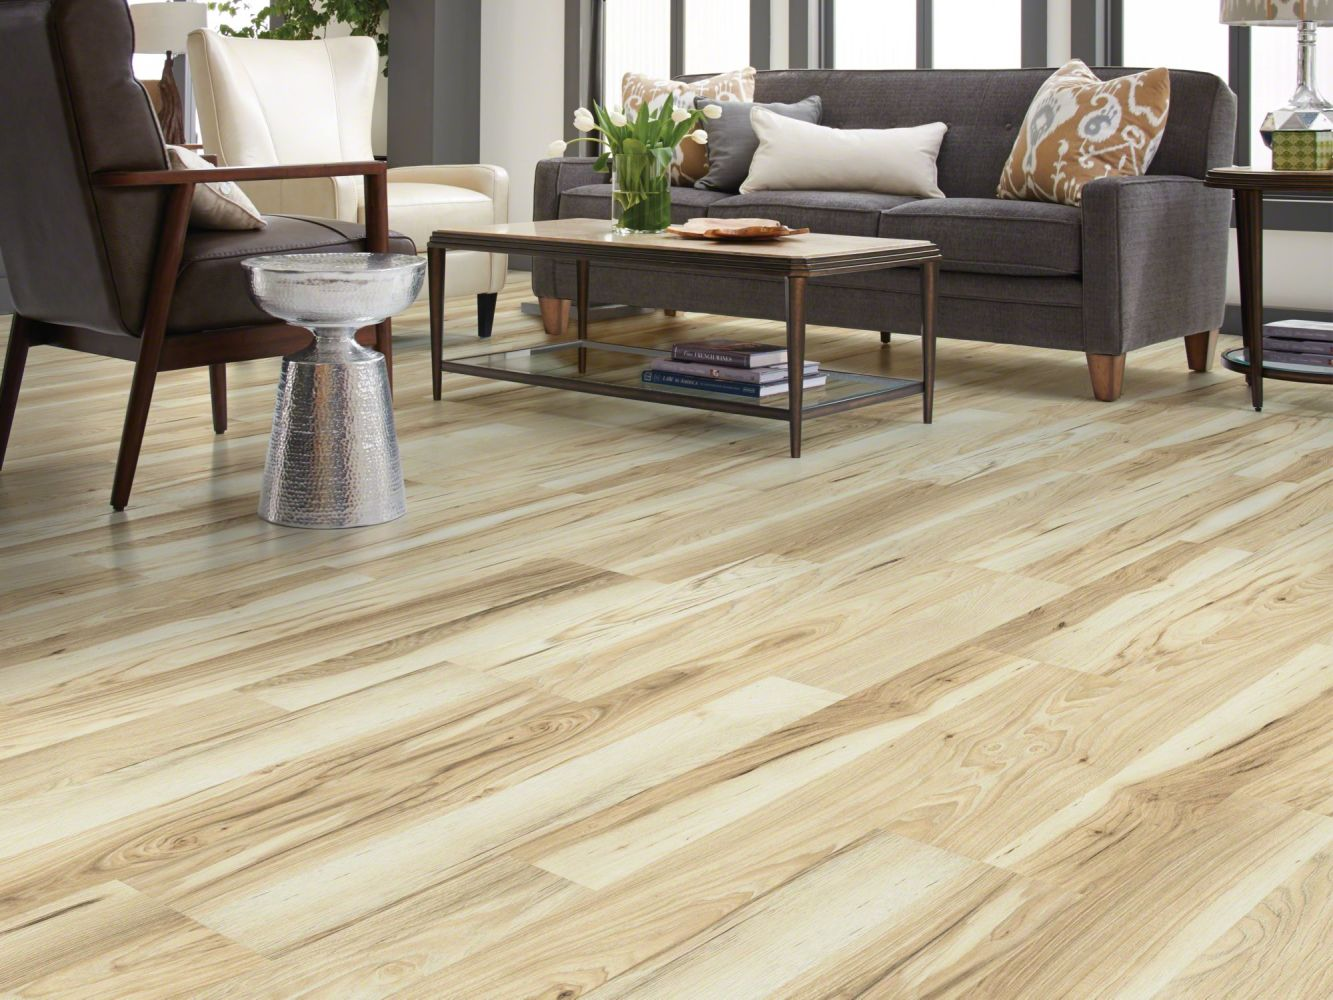 Shaw Floors Versalock Laminate Classic Designs Starlight Hckry 01016_SL110